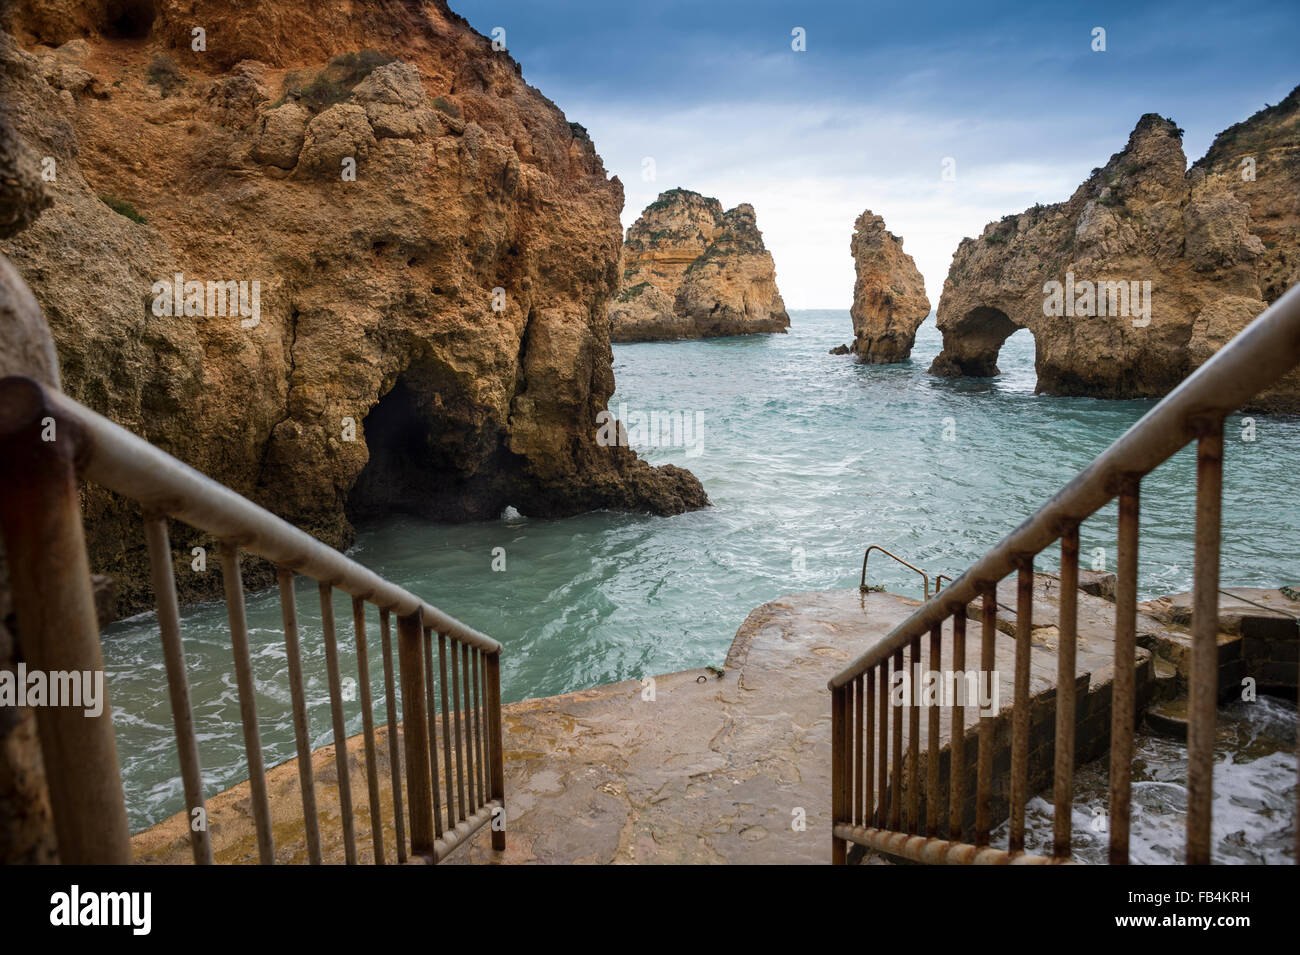 Ponta da Piedade Grottos at Lagos in the western Algarve, Portugal. - Stock Image